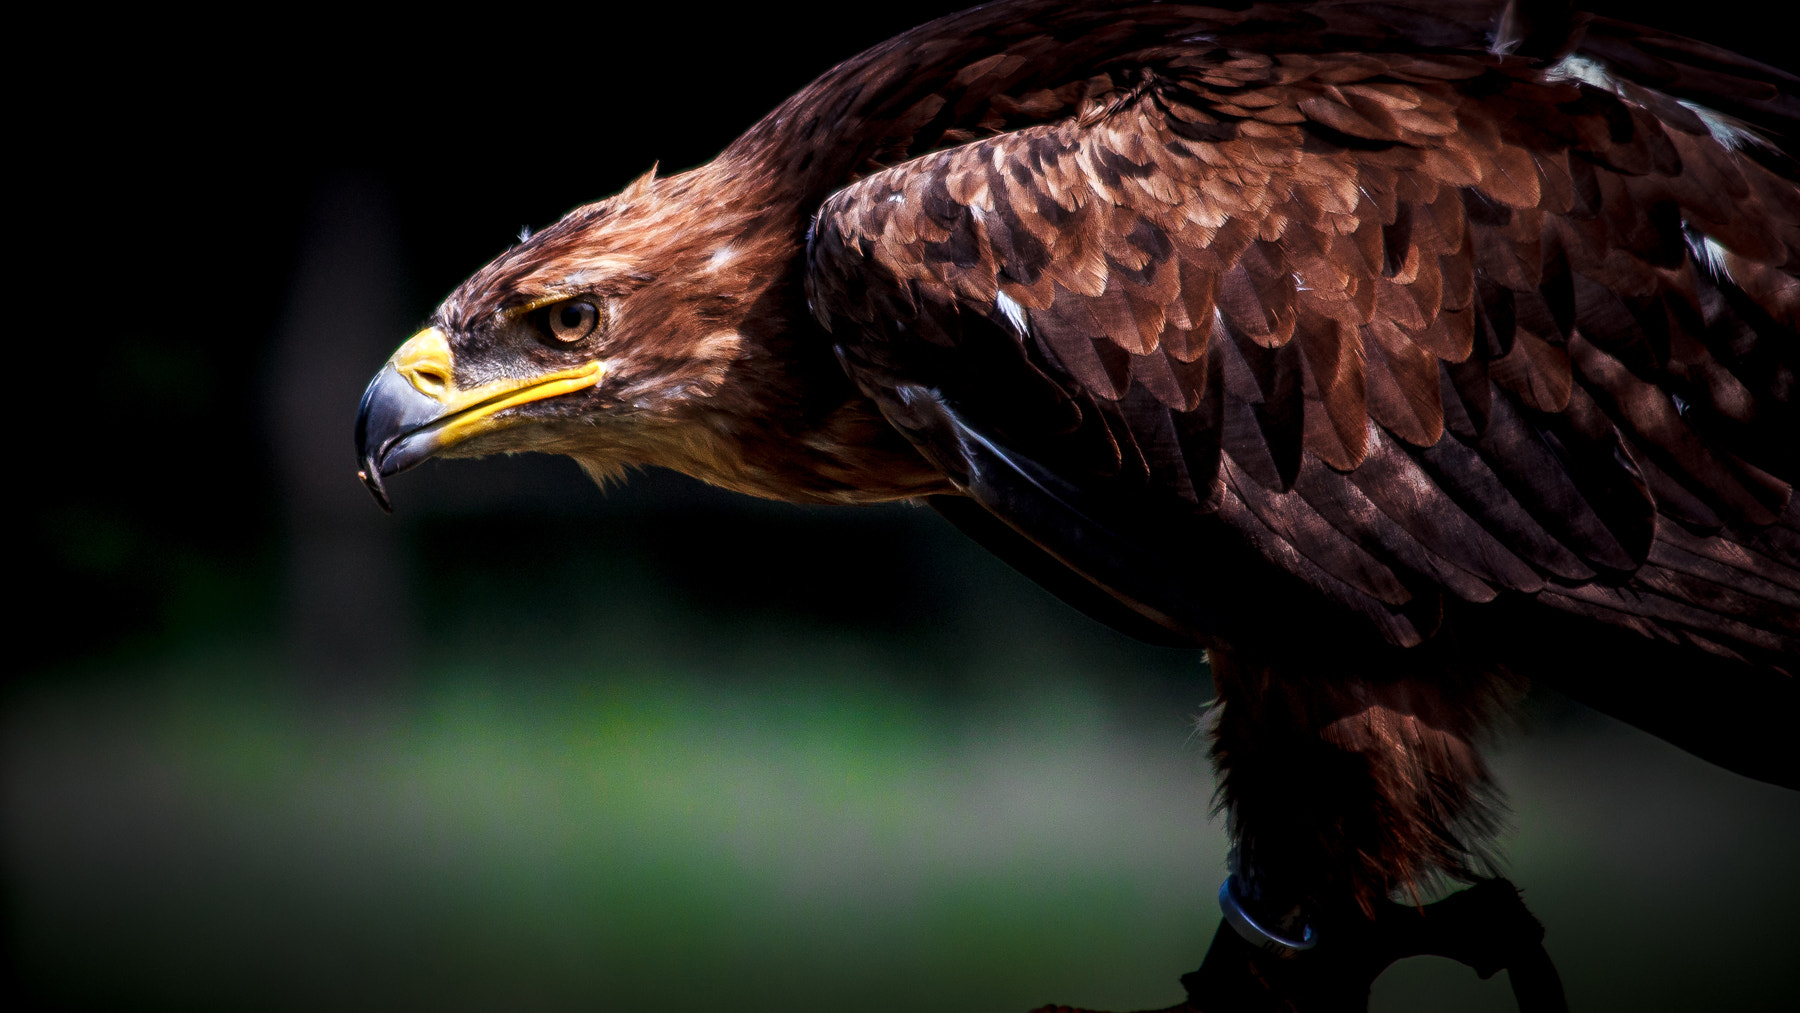 Photograph Golden Eagle by Donato Romagnuolo on 500px